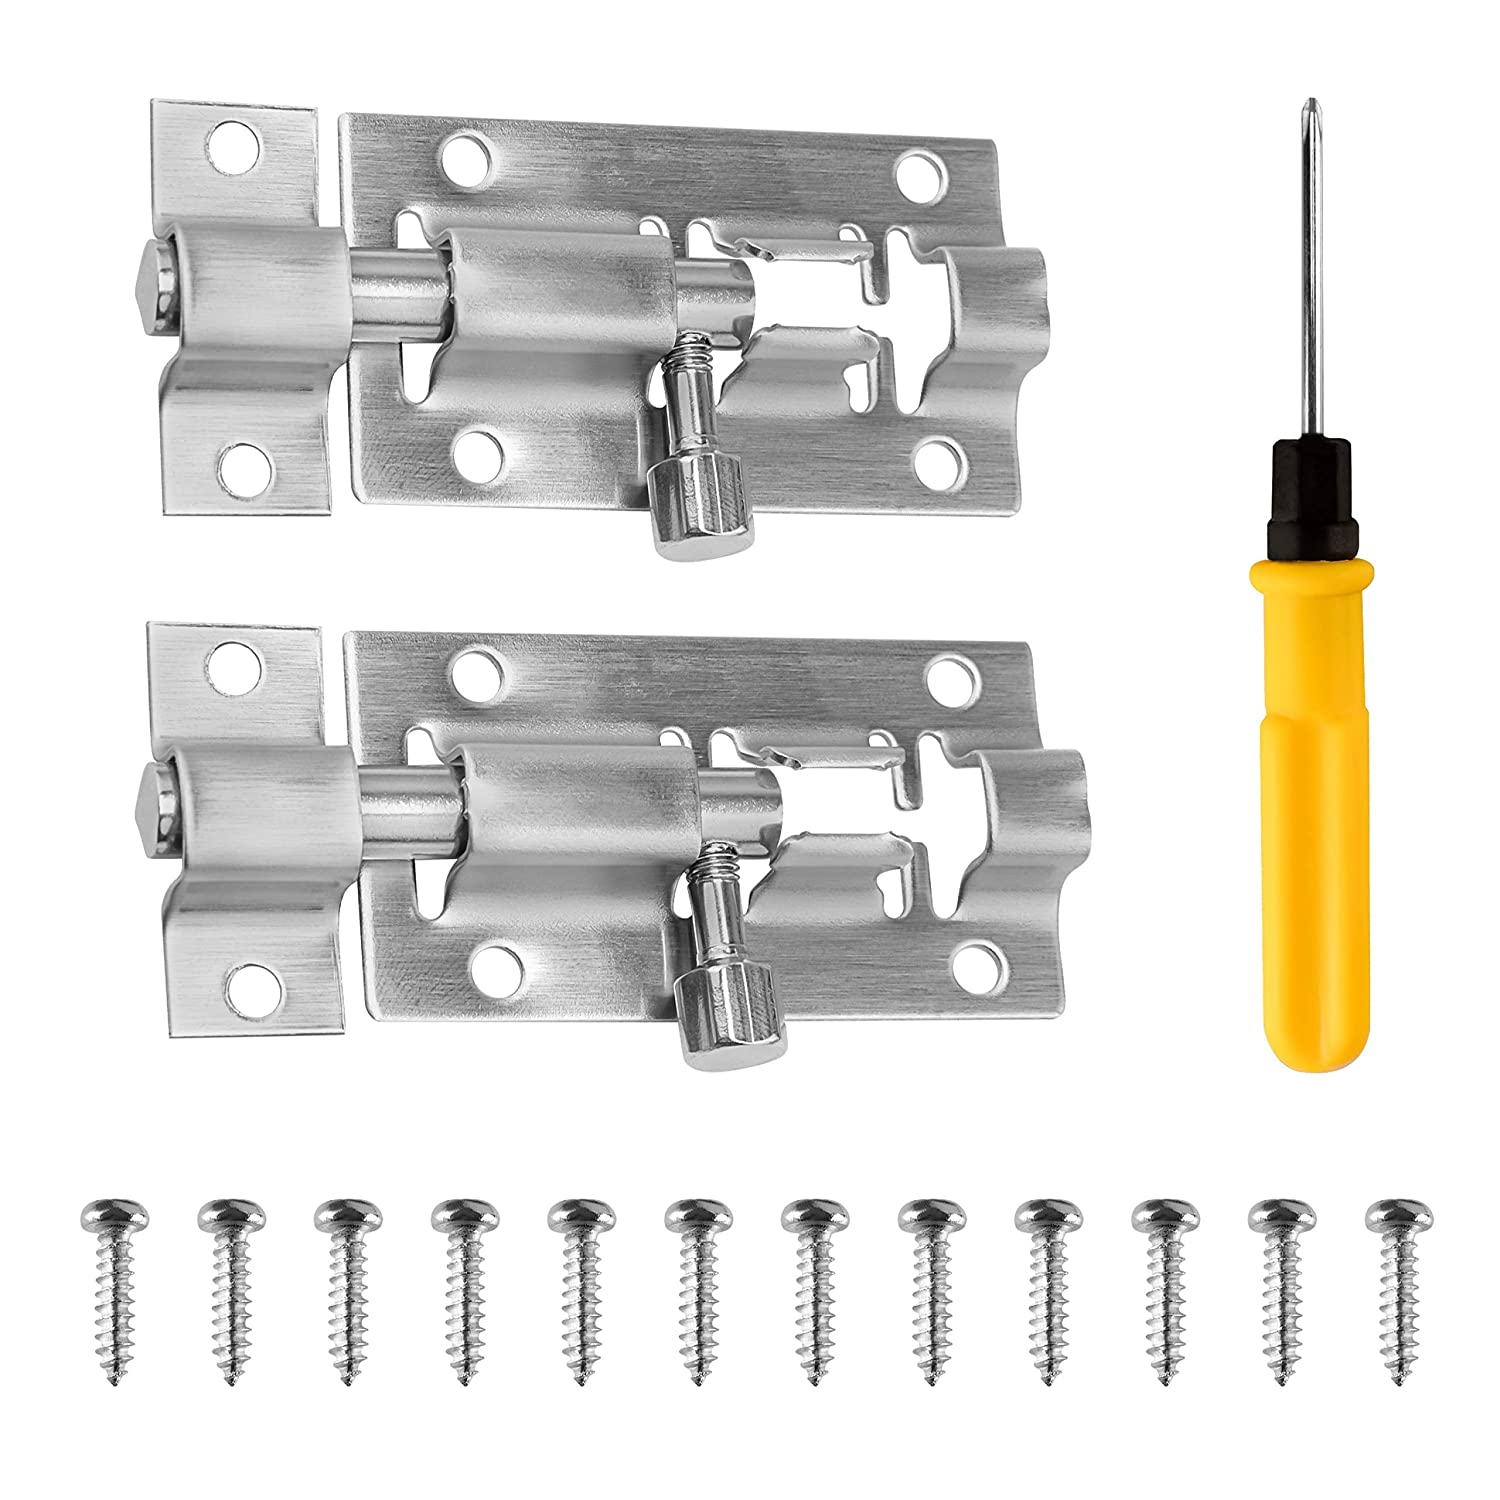 Fences Sumille 2 Pack Stainless Steel Slide Latch Lock with Screwdriver Windows Brushed Finish Slide Door Latch for Chests Barrel Bolt Security Lock Cabinets